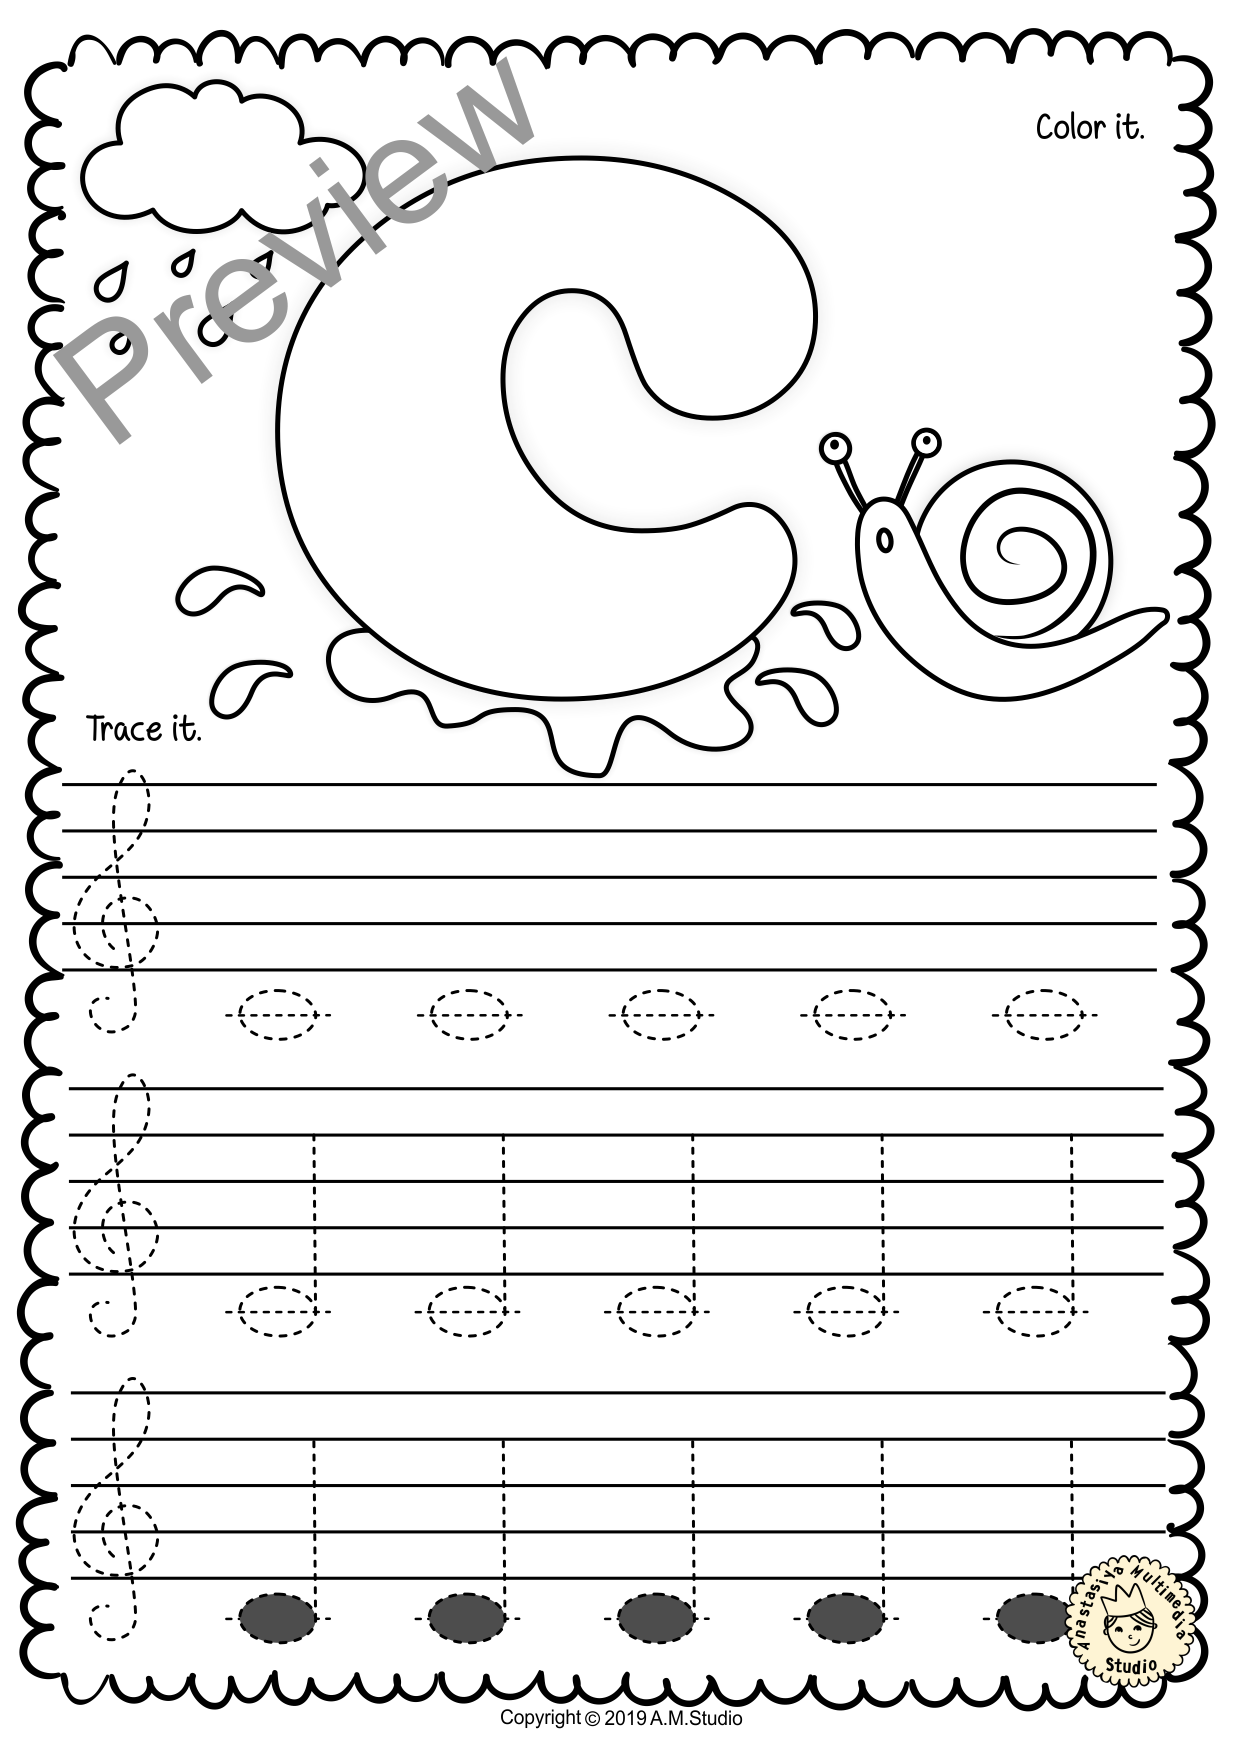 Treble Clef Tracing Music Notes Worksheets for Spring #trebleclef